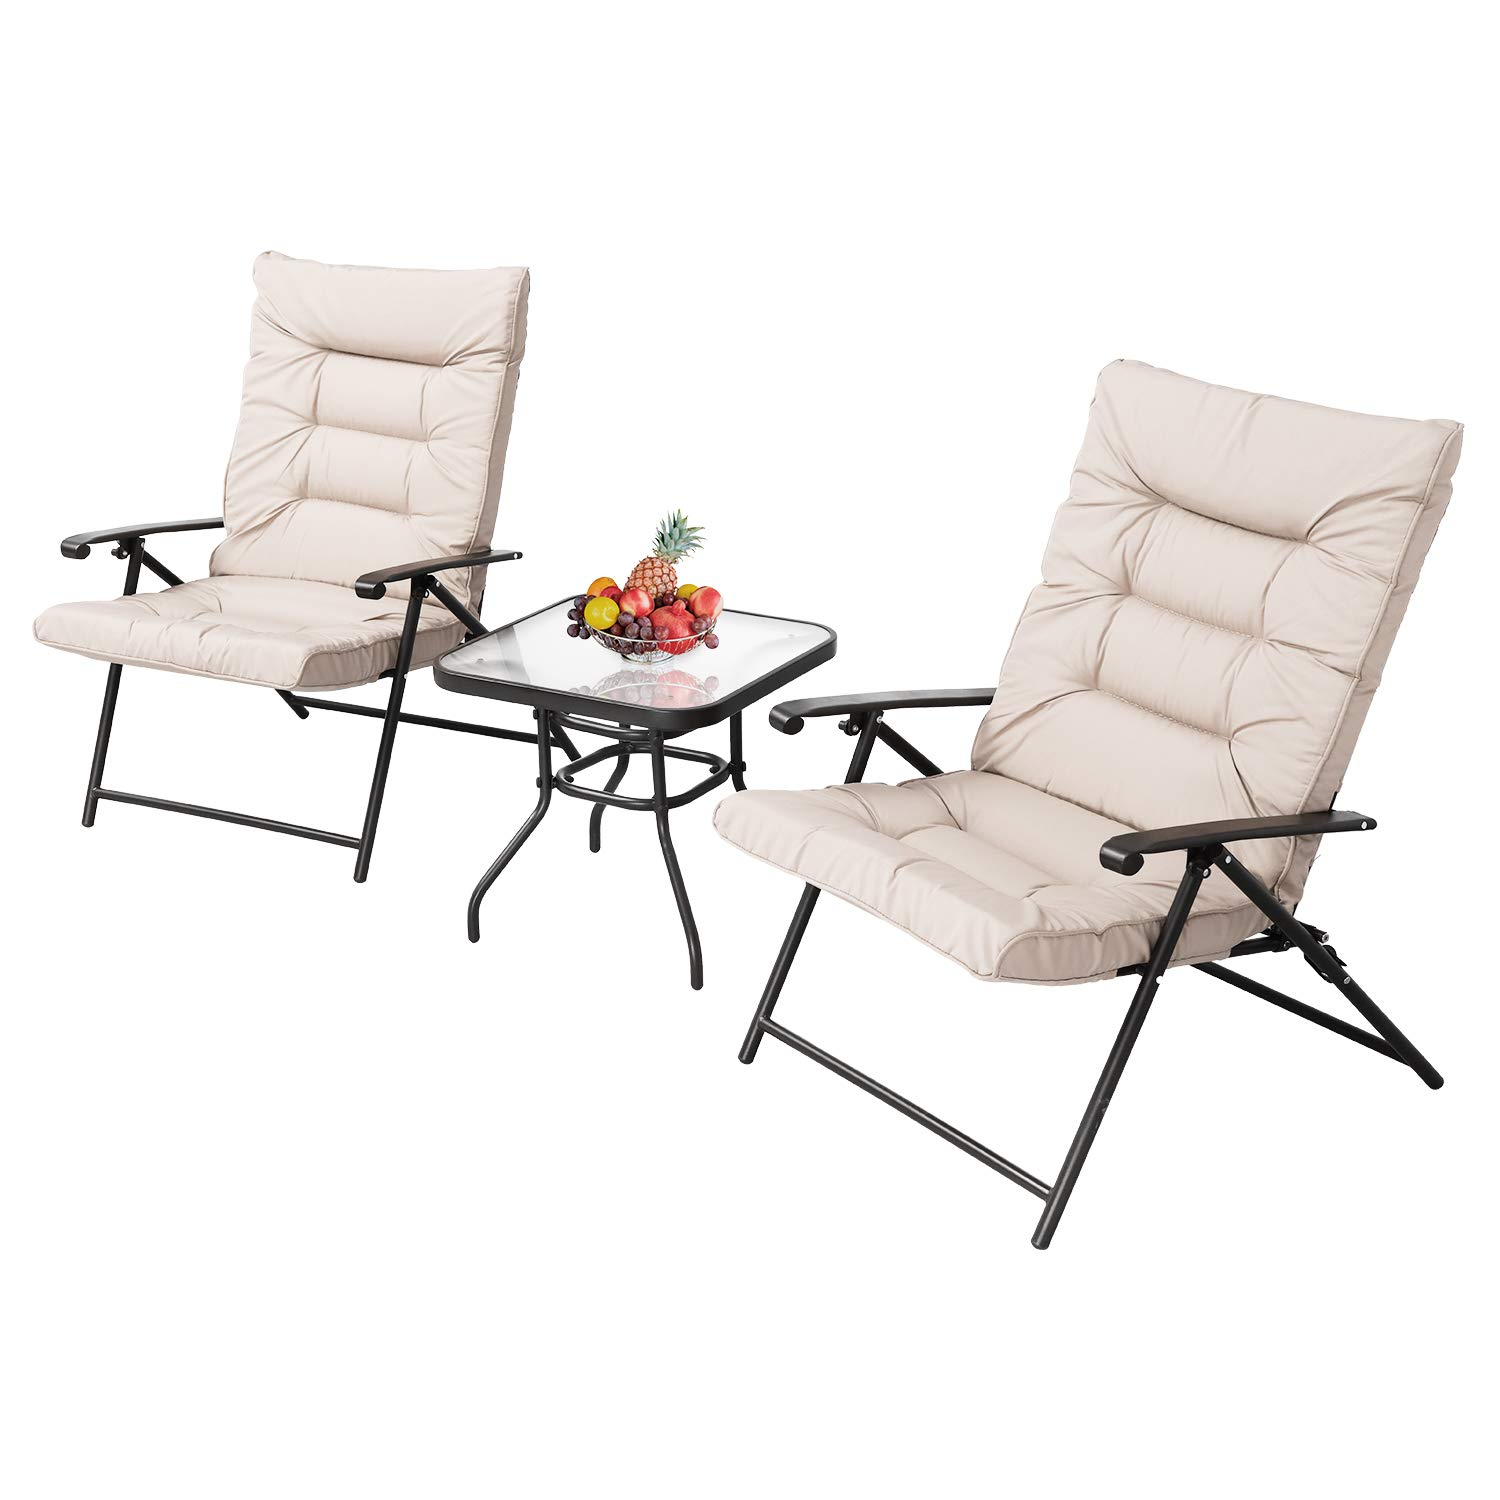 SUNCROWN Patio Padded Folding 3 Pieces Chair Set Adjustable Reclining Outdoor Furniture Metal Sling Chair w/Coffee Table